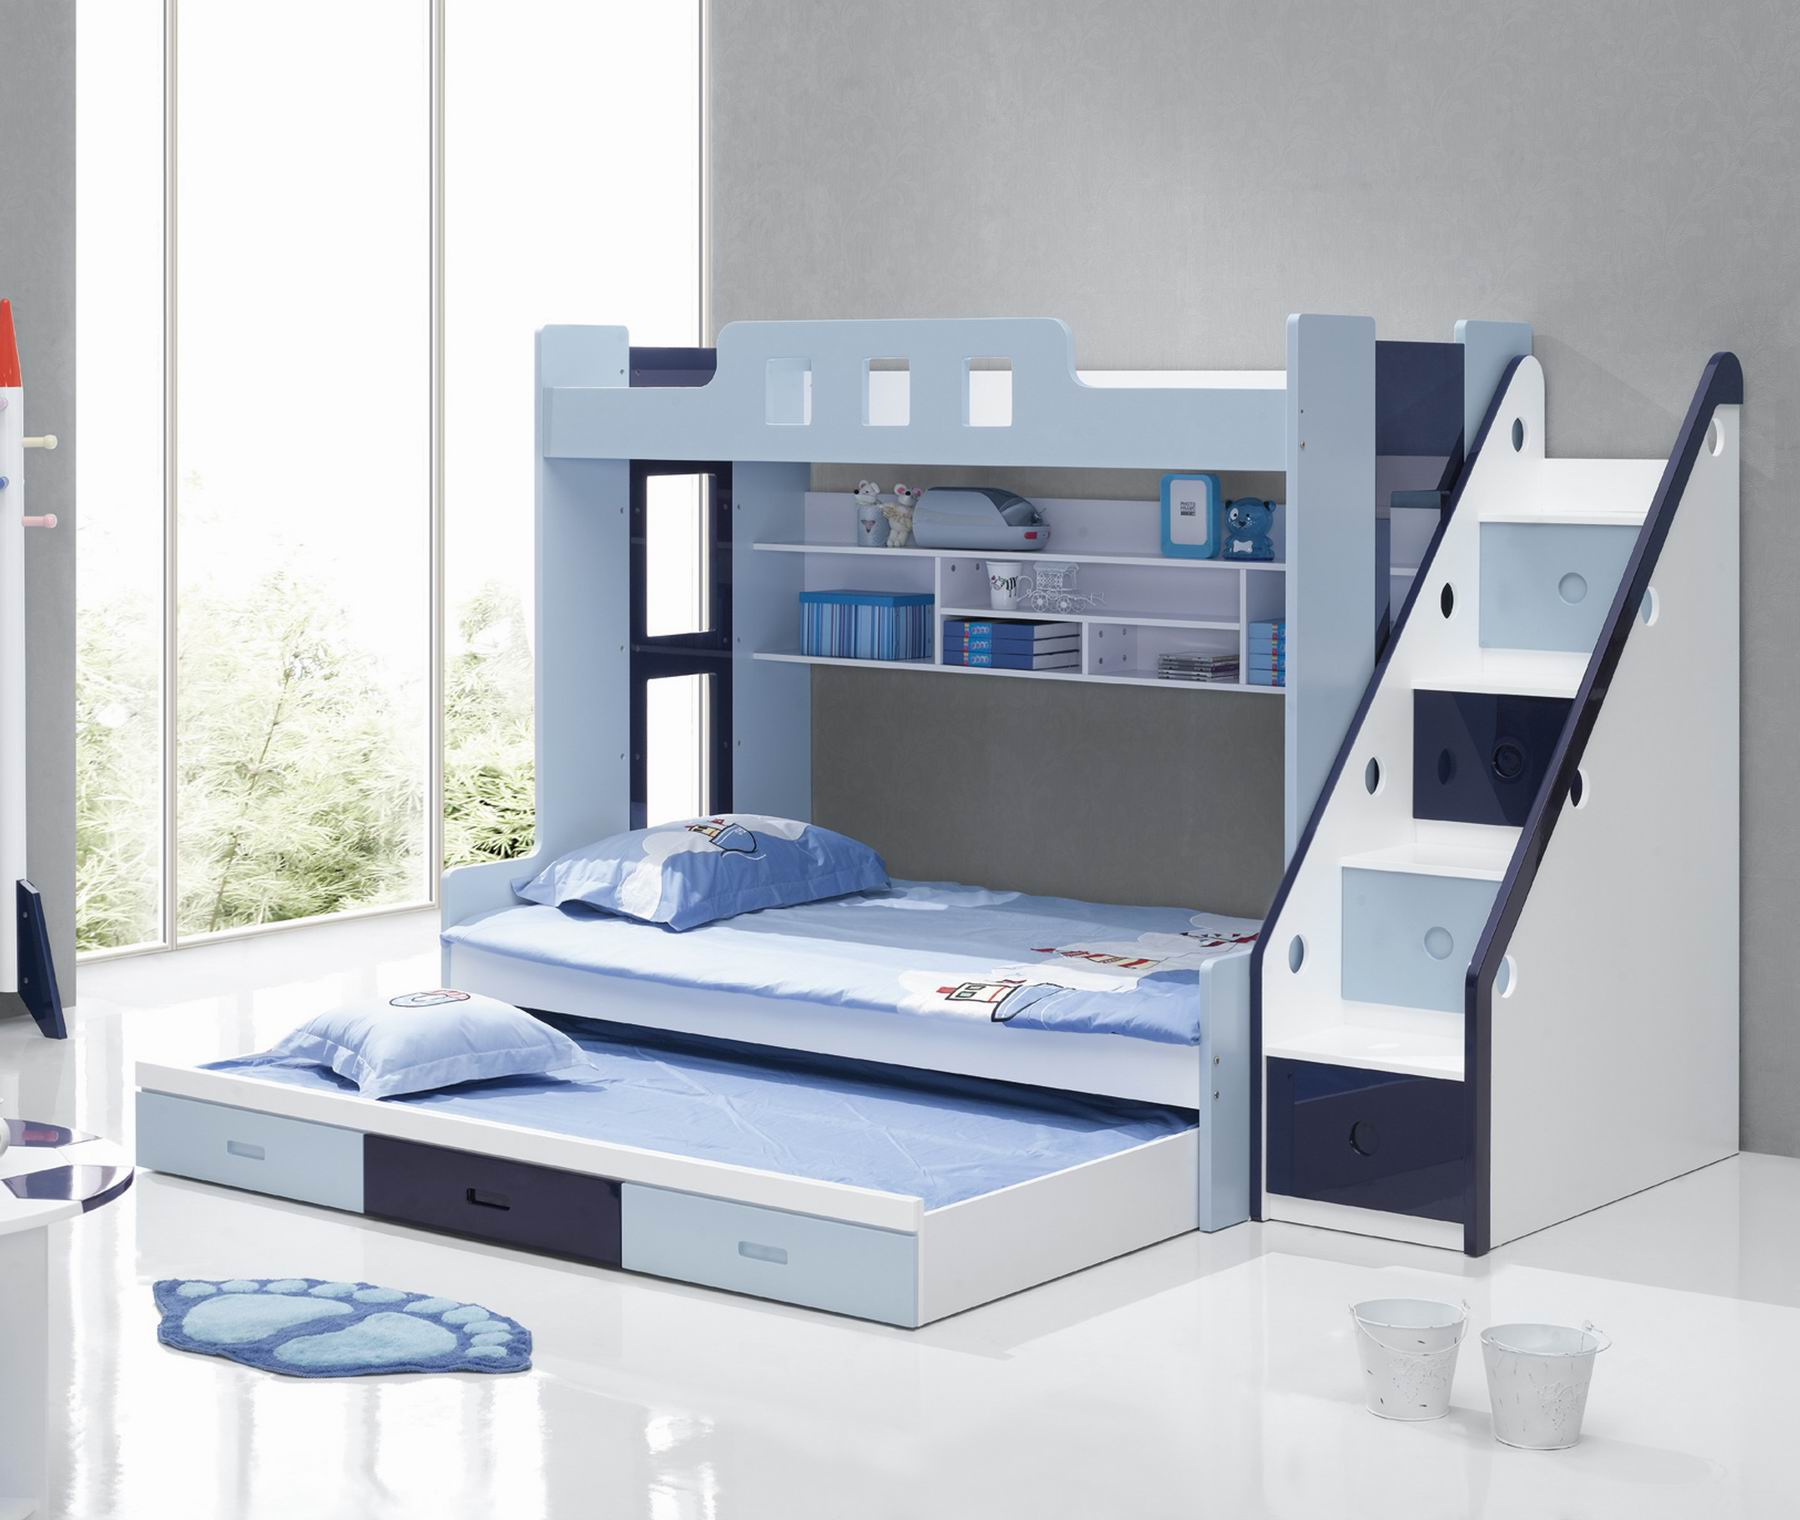 Picture of: Cheap Price 3 Tiers Kids Bed Triple Bunk Bed Buy Triple Bunk Beds For Kids Kids Furniture Cheap Bunk Beds 3 Tiers Wood Double Bed Designs For Sleeping Storage Product On Alibaba Com